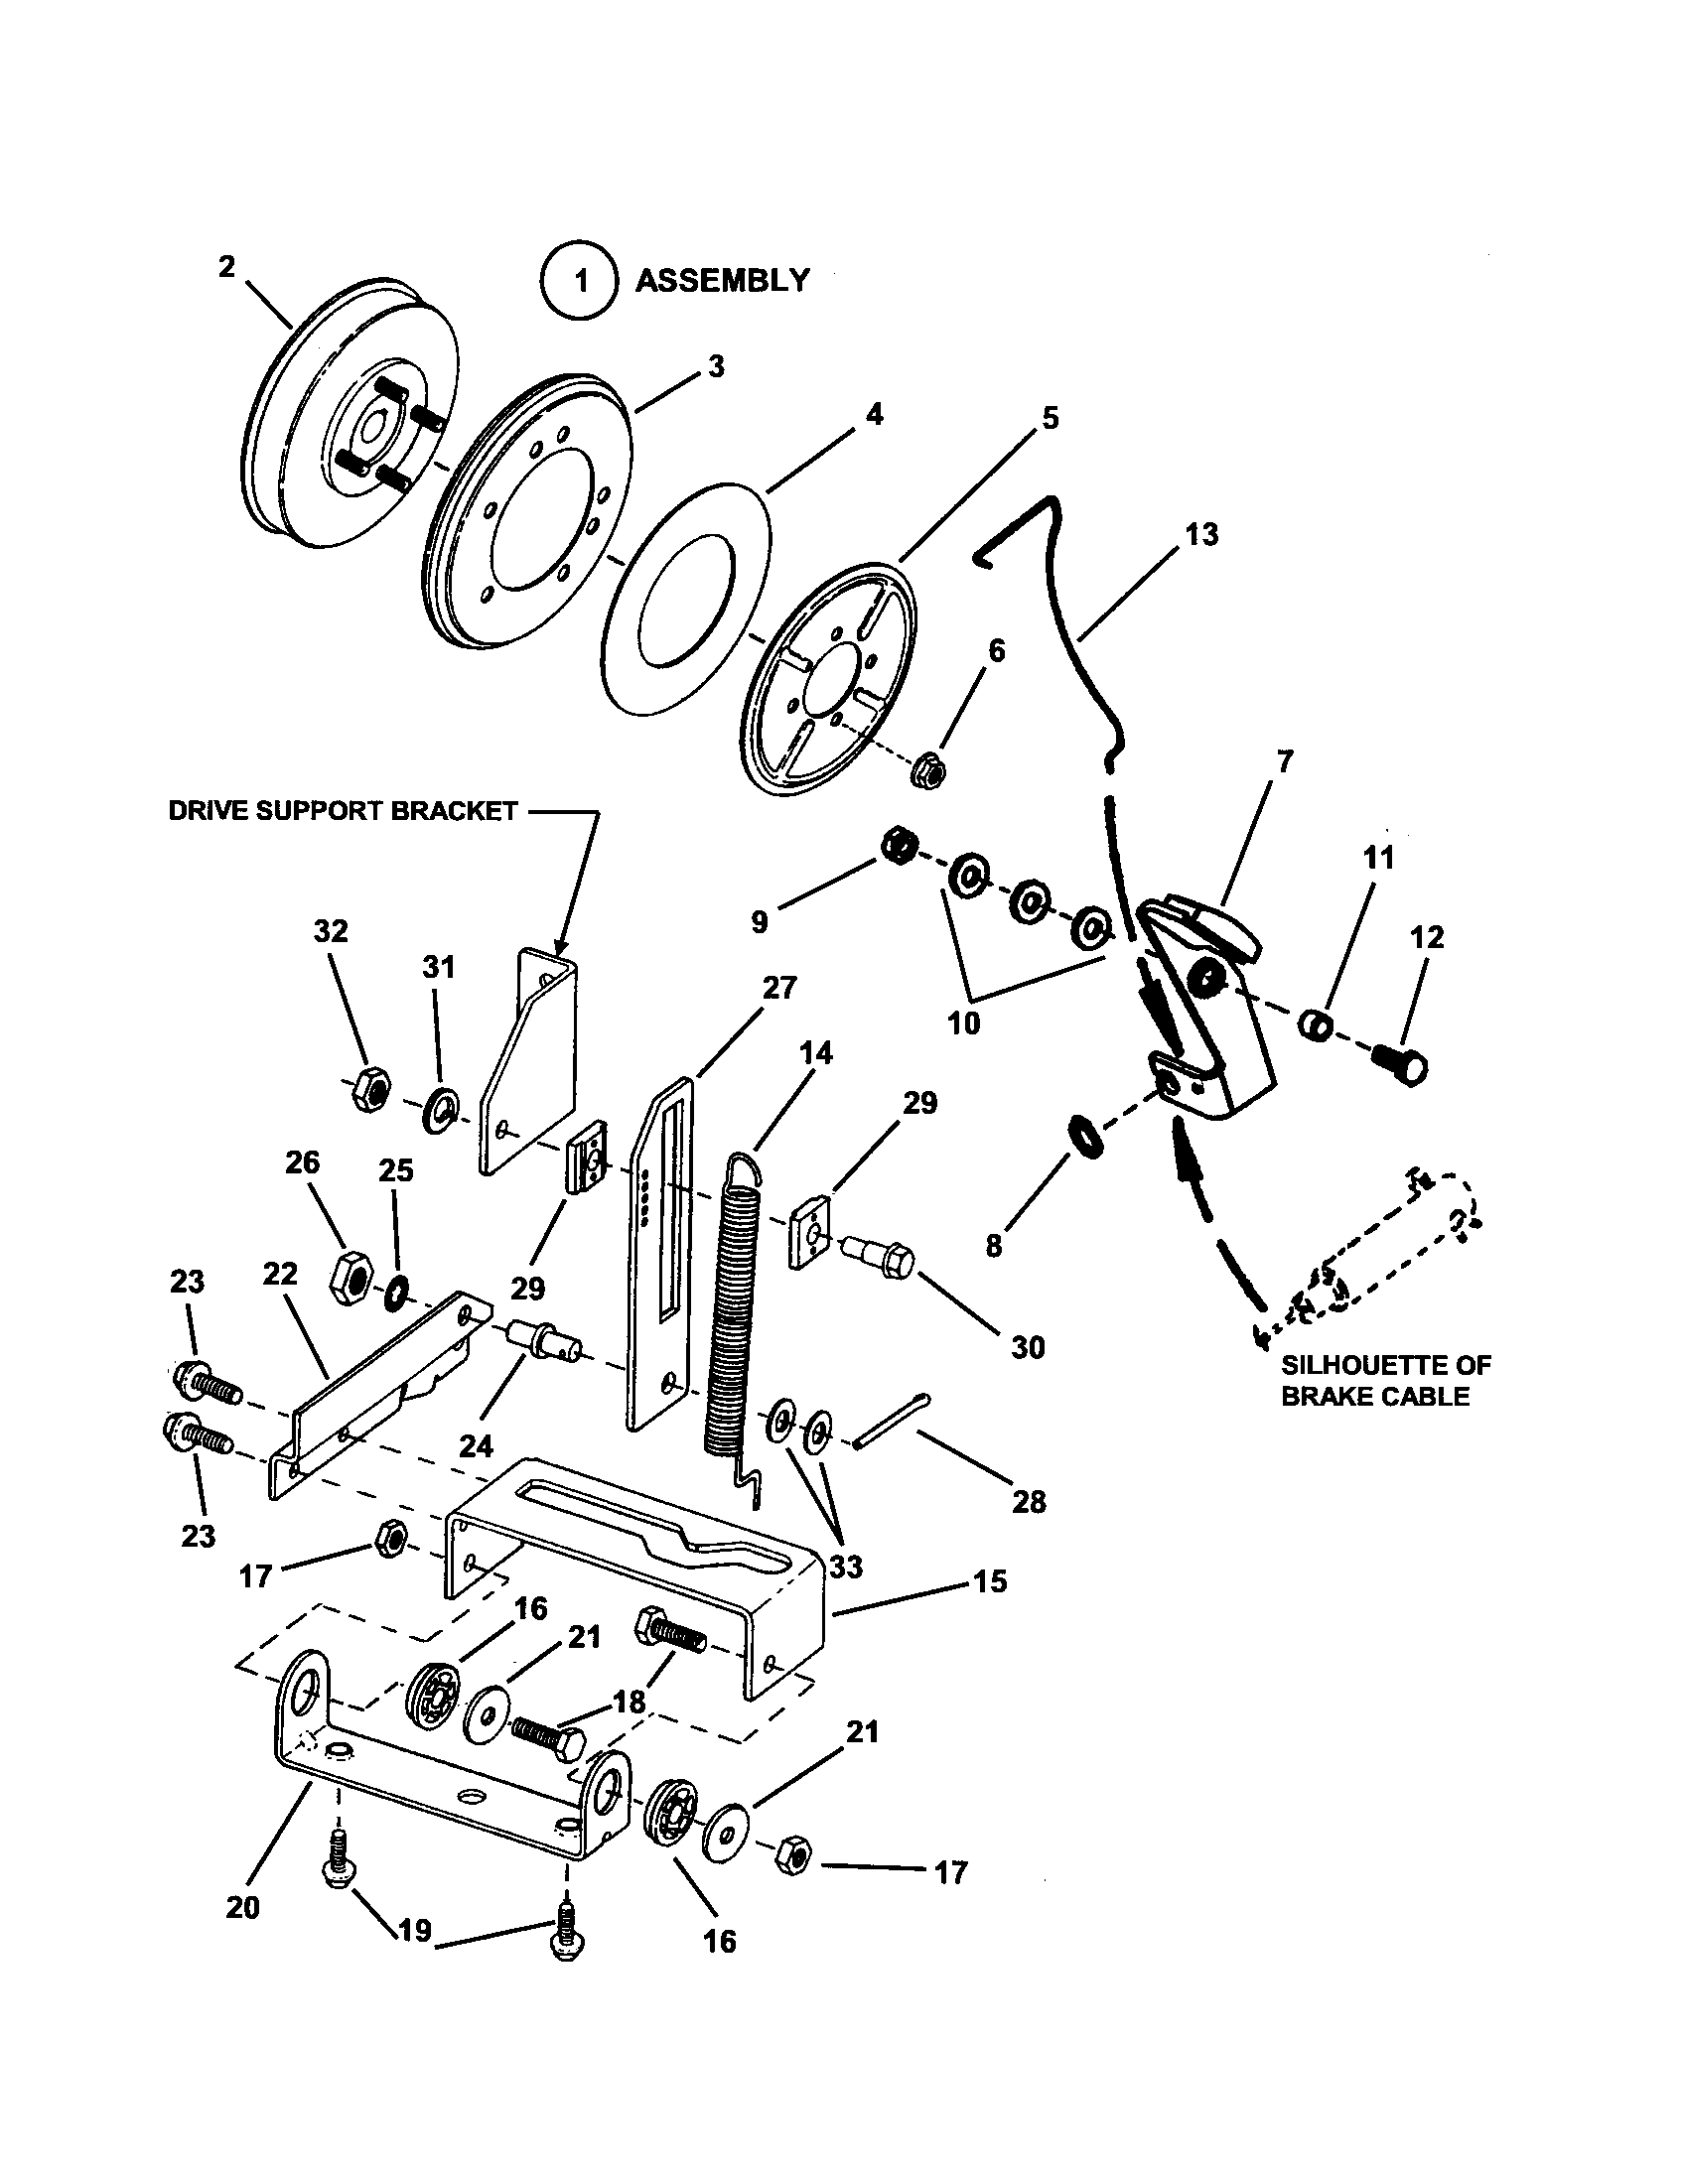 Detailed Engine Wiring Diagram 917 Lawn Mower